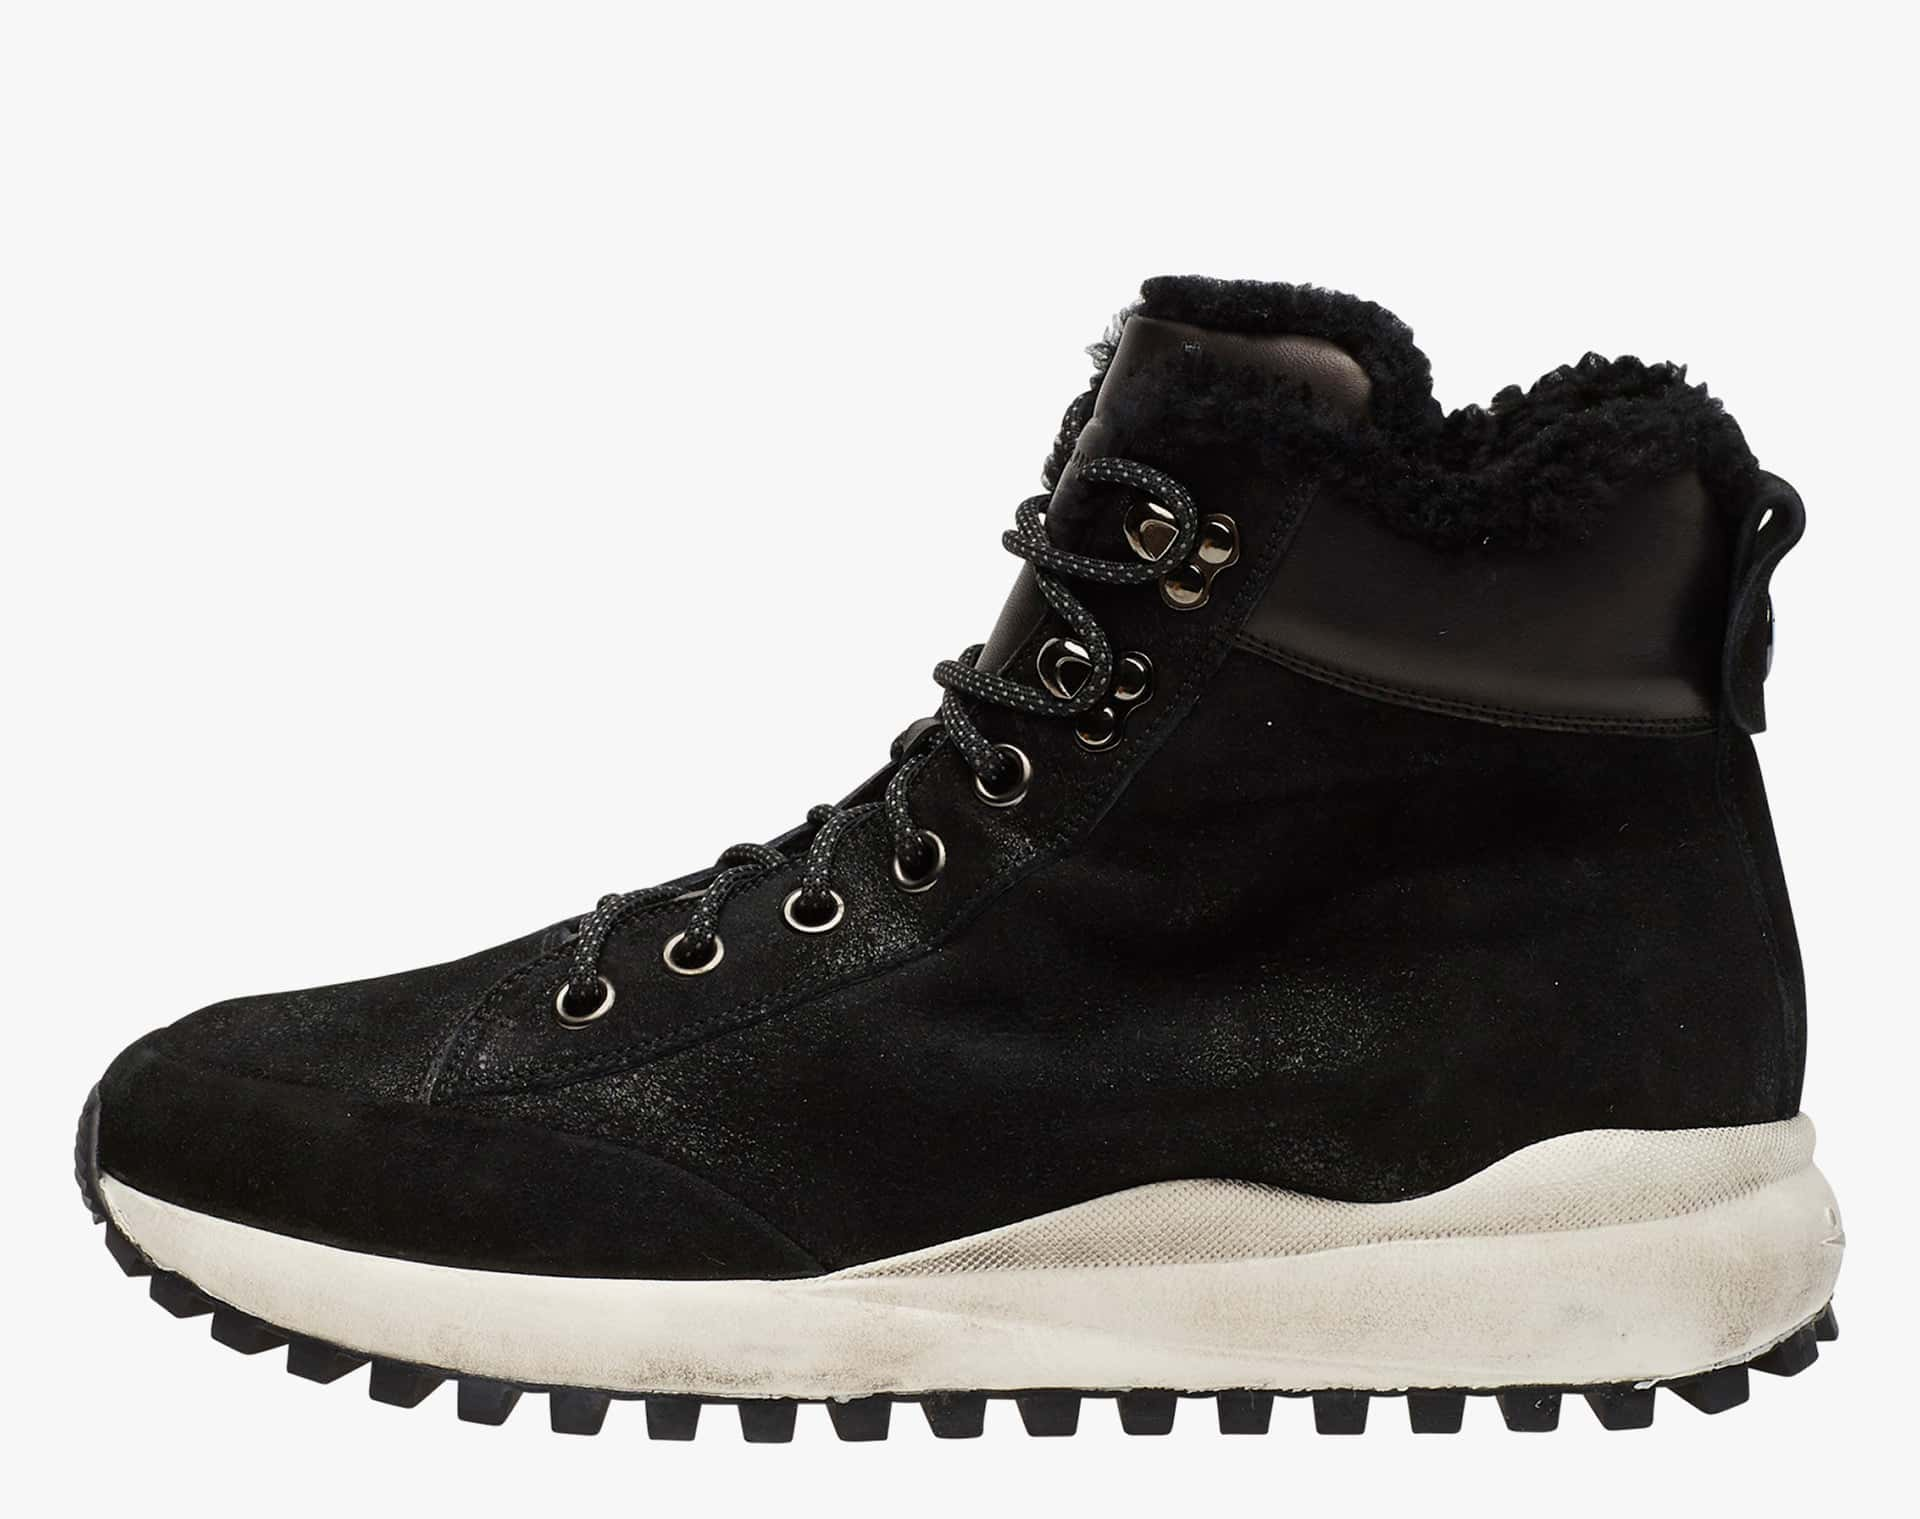 NEW TOM FUR - suede boots - Black